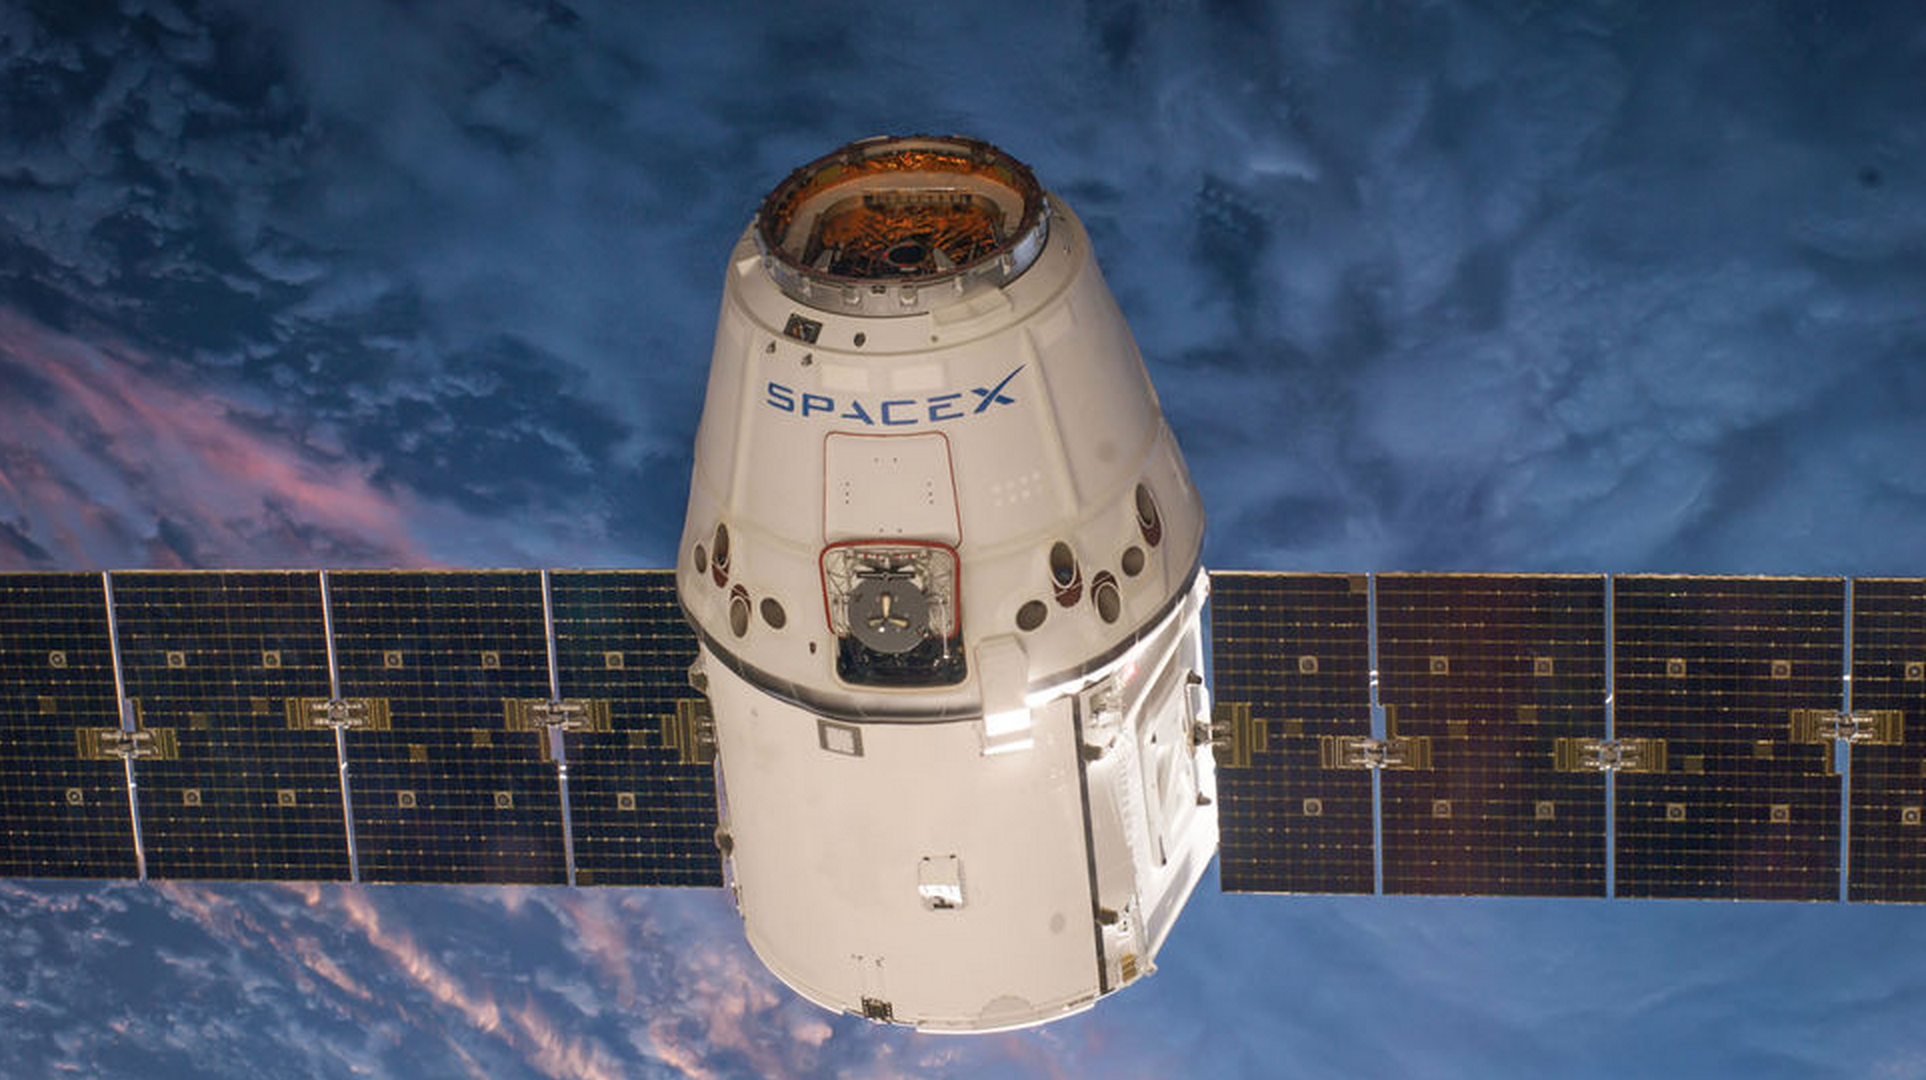 The original SpaceX Dragon capsule. Photo courtesy of SpaceX.